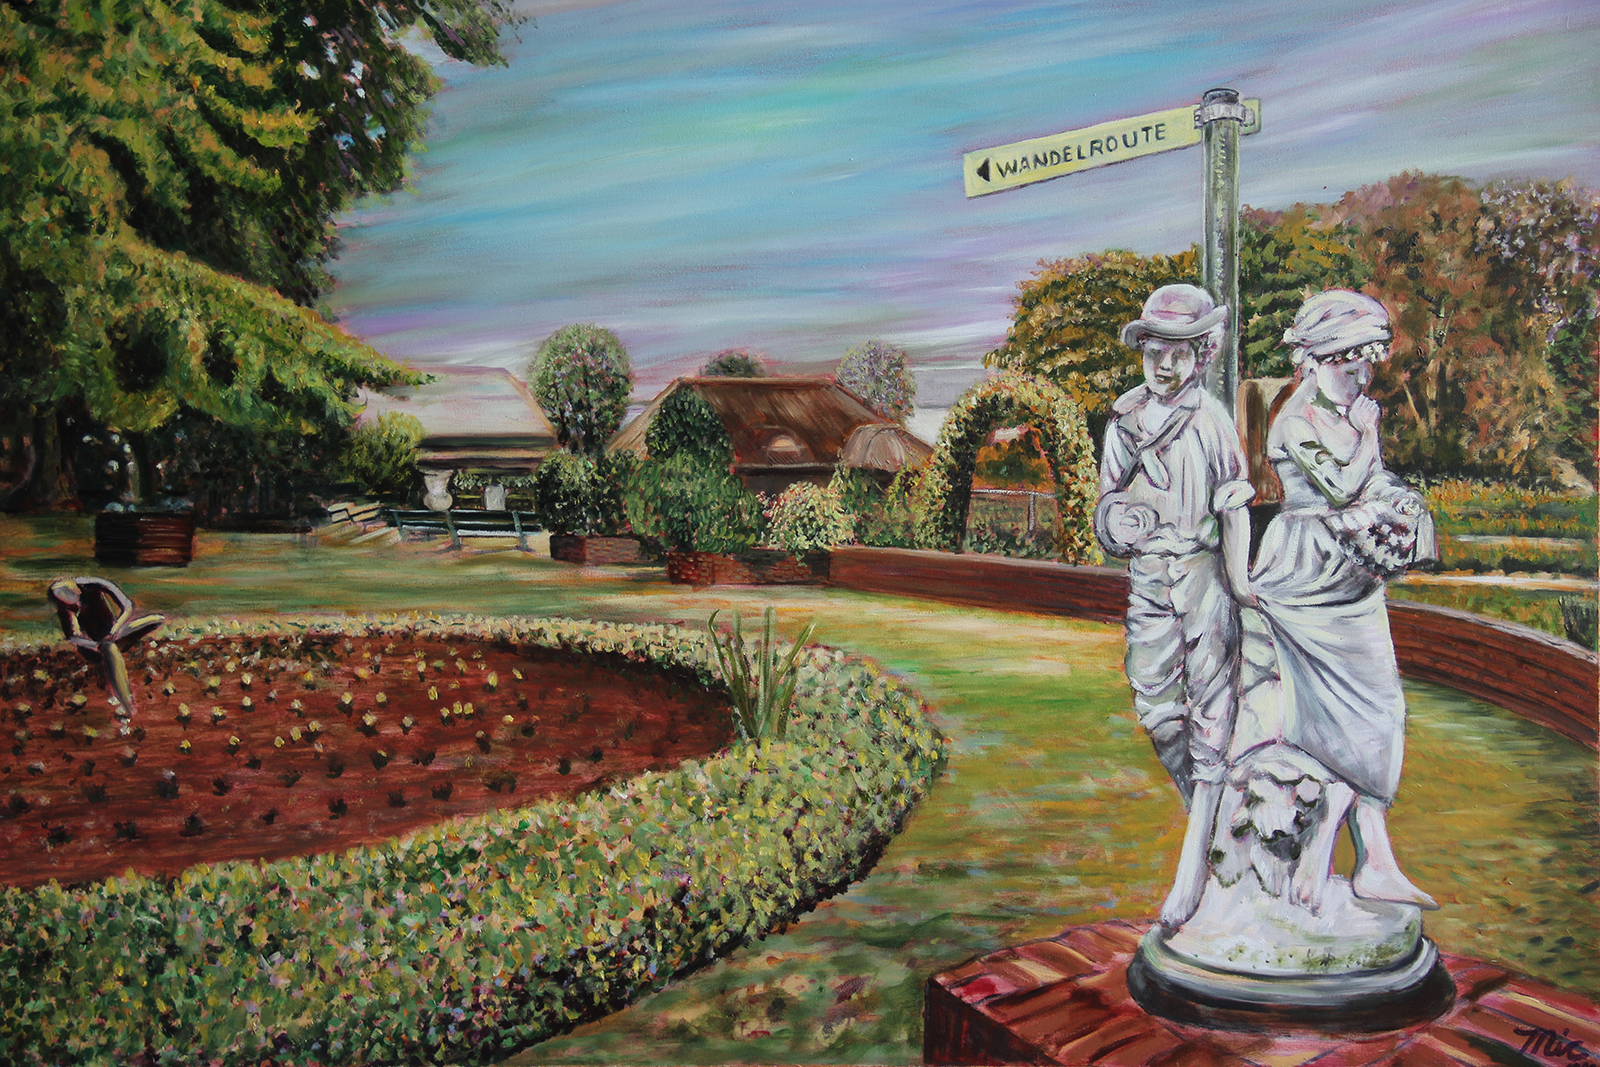 """""""Wandelroute"""" Netherlands - Oil on Italian canvas, Private Collection Bob and Marcy Roth.Giclee Limited Edition and canvas prints are available. Please visit the prints gallery."""